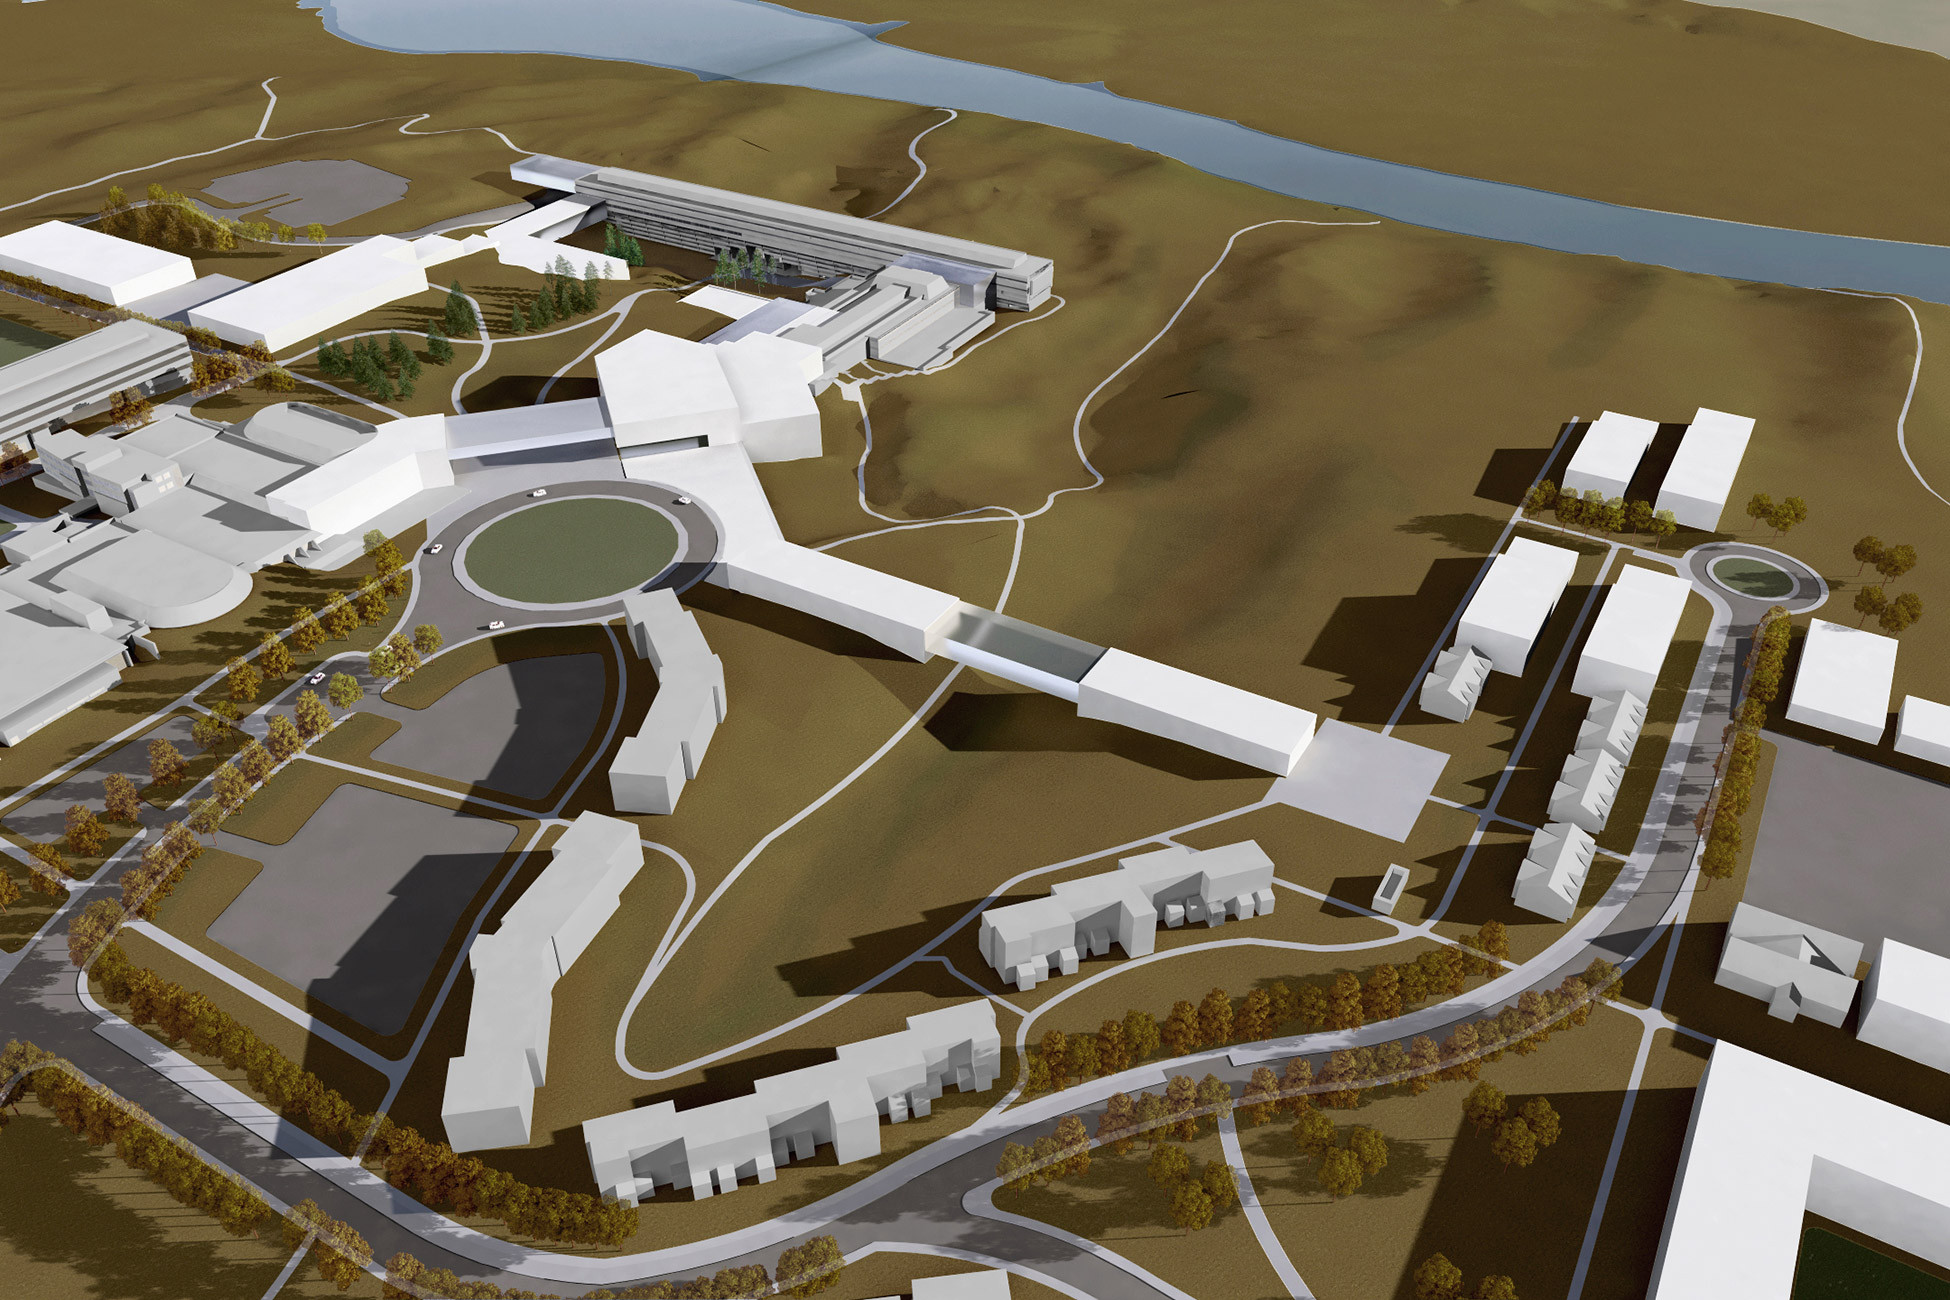 university of lethbridge campus master plan